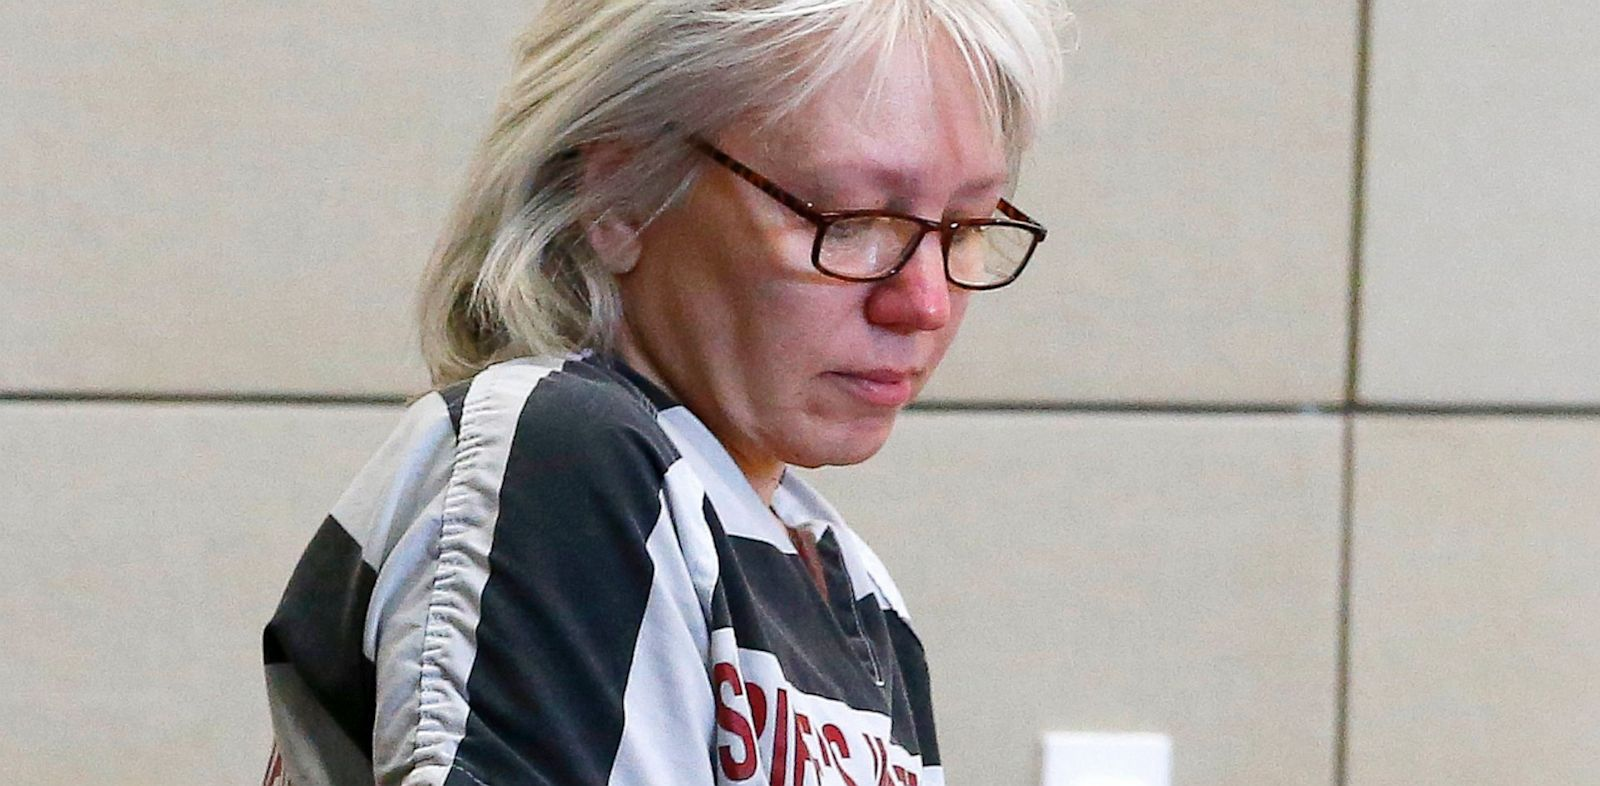 PHOTO: Debra Jean Milke, who spent two decades in jail for the 1989 shooting death of her 4-year-old son, is seen in this file photo at Maricopa County Superior Court in Phoenix, Aug. 1, 2013.